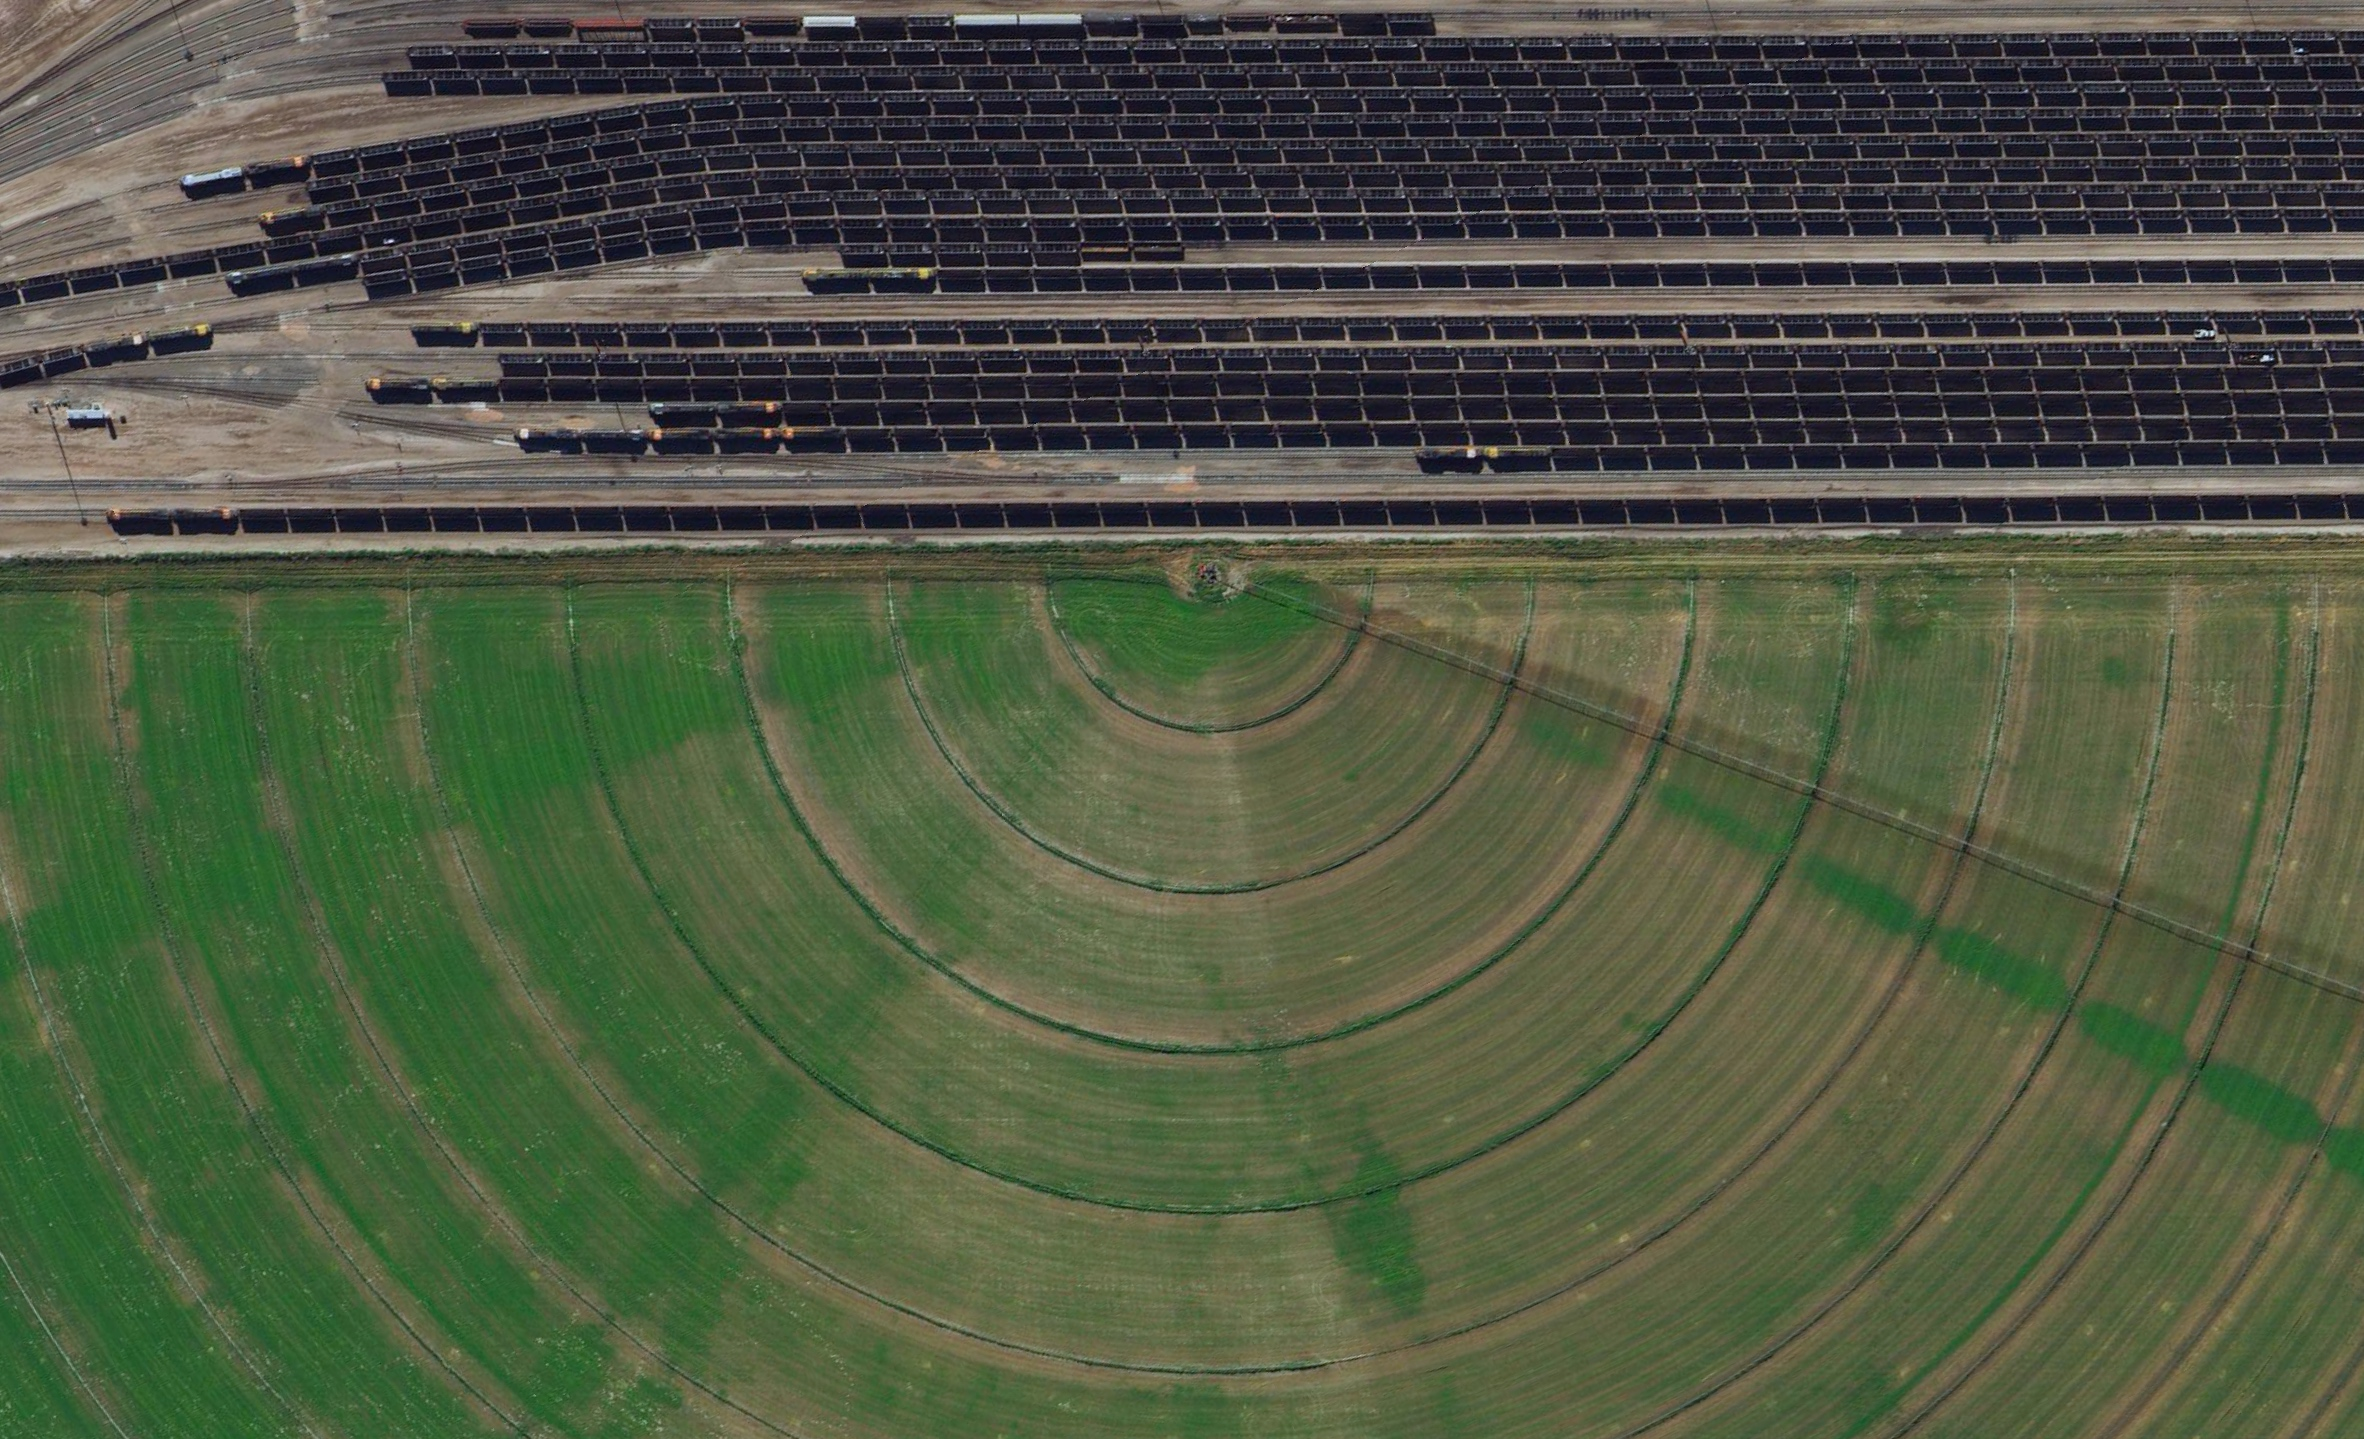 7/15/2015   Coal trains   Alliance, Nebraska, USA  42.082523321°, -102.890045721°    Coal trains - some full, others empty - idle in a railyard next to a pivot irrigation circle in Alliance, Nebraska, USA. The city is located in the Powder River Basin - one of the world's largest coal-mining areas - and serves as a stopping point for trains en route to power plants in the Midwest and Southern parts of the country.